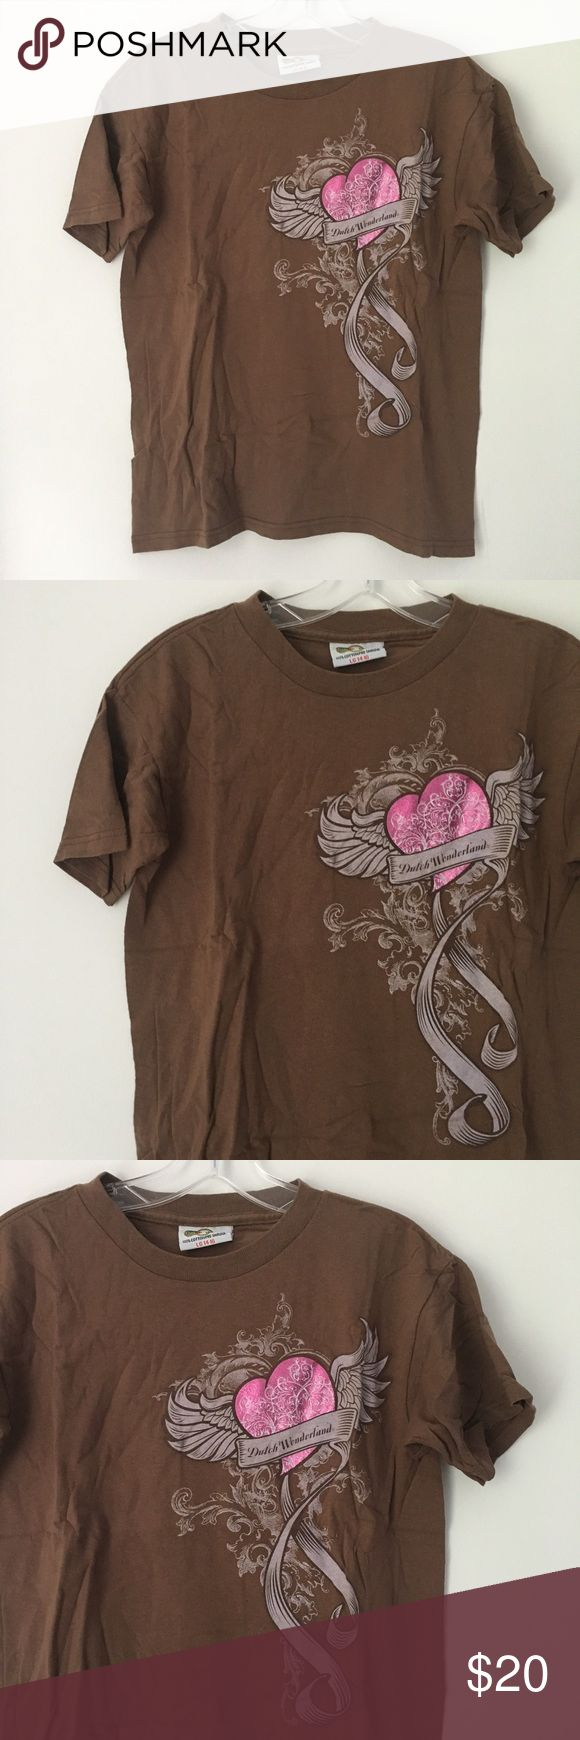 """DUTCH WONDERLAND HEART ANGEL WINGS TEE SHIRT TOP!! Dutch Wonderland Amusement Park Goth Gothic Punk Rock Grunge Tattoo Style Heart Love Angel Wings Ribbon Ribbons Vines Fancy Chocolate Brown/White/Metallic Shiny Shimmer Hot Bubblegum Pink Graphic RARE Unique Vtg Vintage Early 00's 2000's Y2K Cute Cool Awesome Aesthetic 